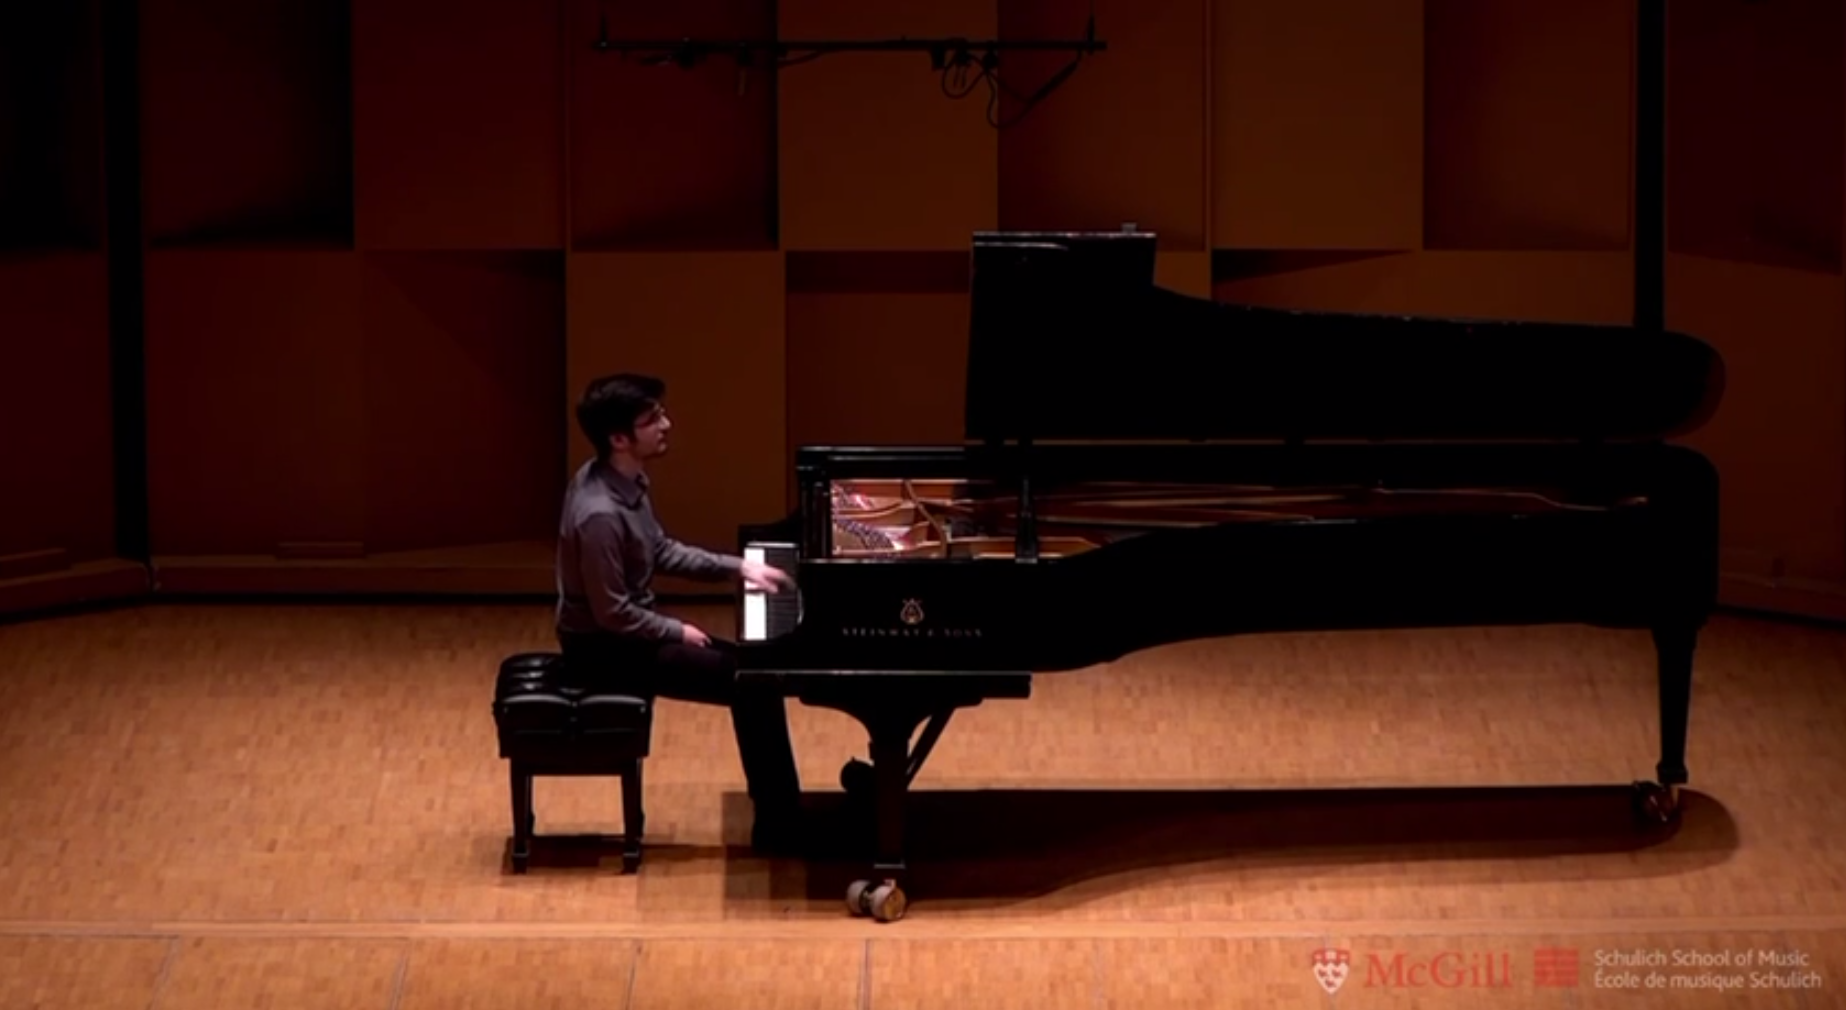 About Dio Piano School